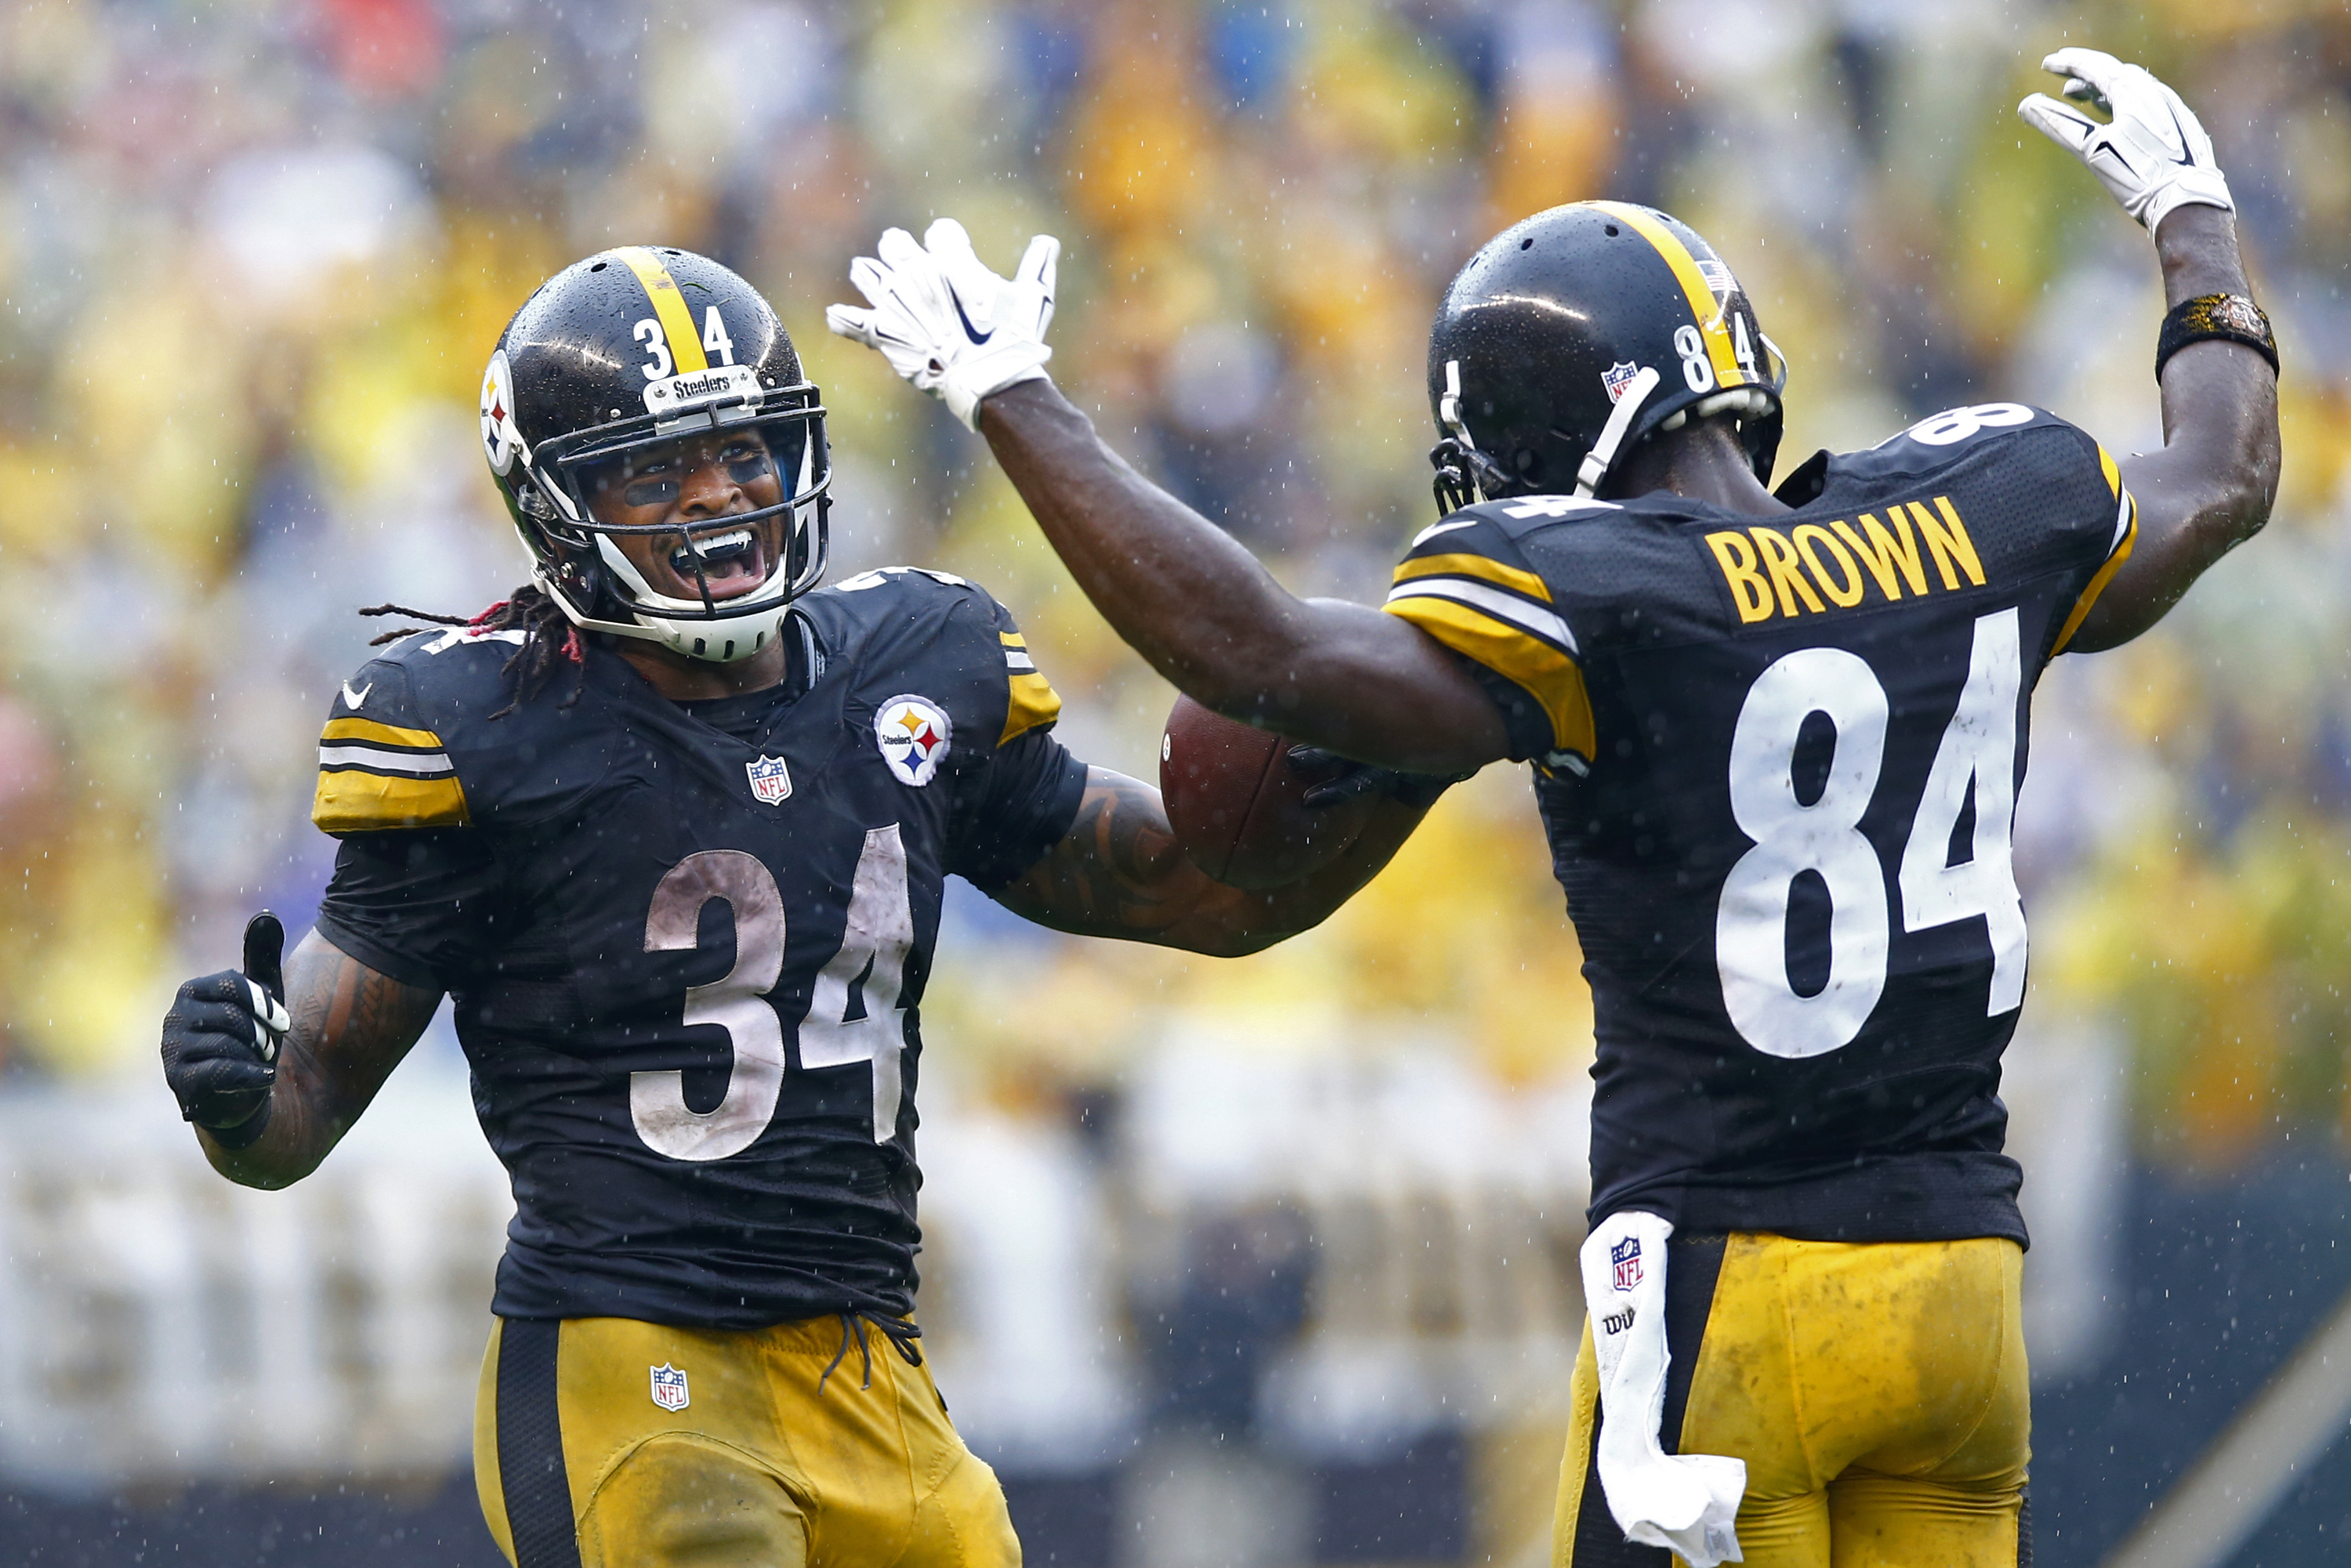 FILE - In this Sunday, Sept. 18, 2016, file photo, Pittsburgh Steelers running back DeAngelo Williams (34) celebrates his touchdown with wide receiver Antonio Brown (84) during the second half of an NFL football game against the Cincinnati Bengals in Pitt